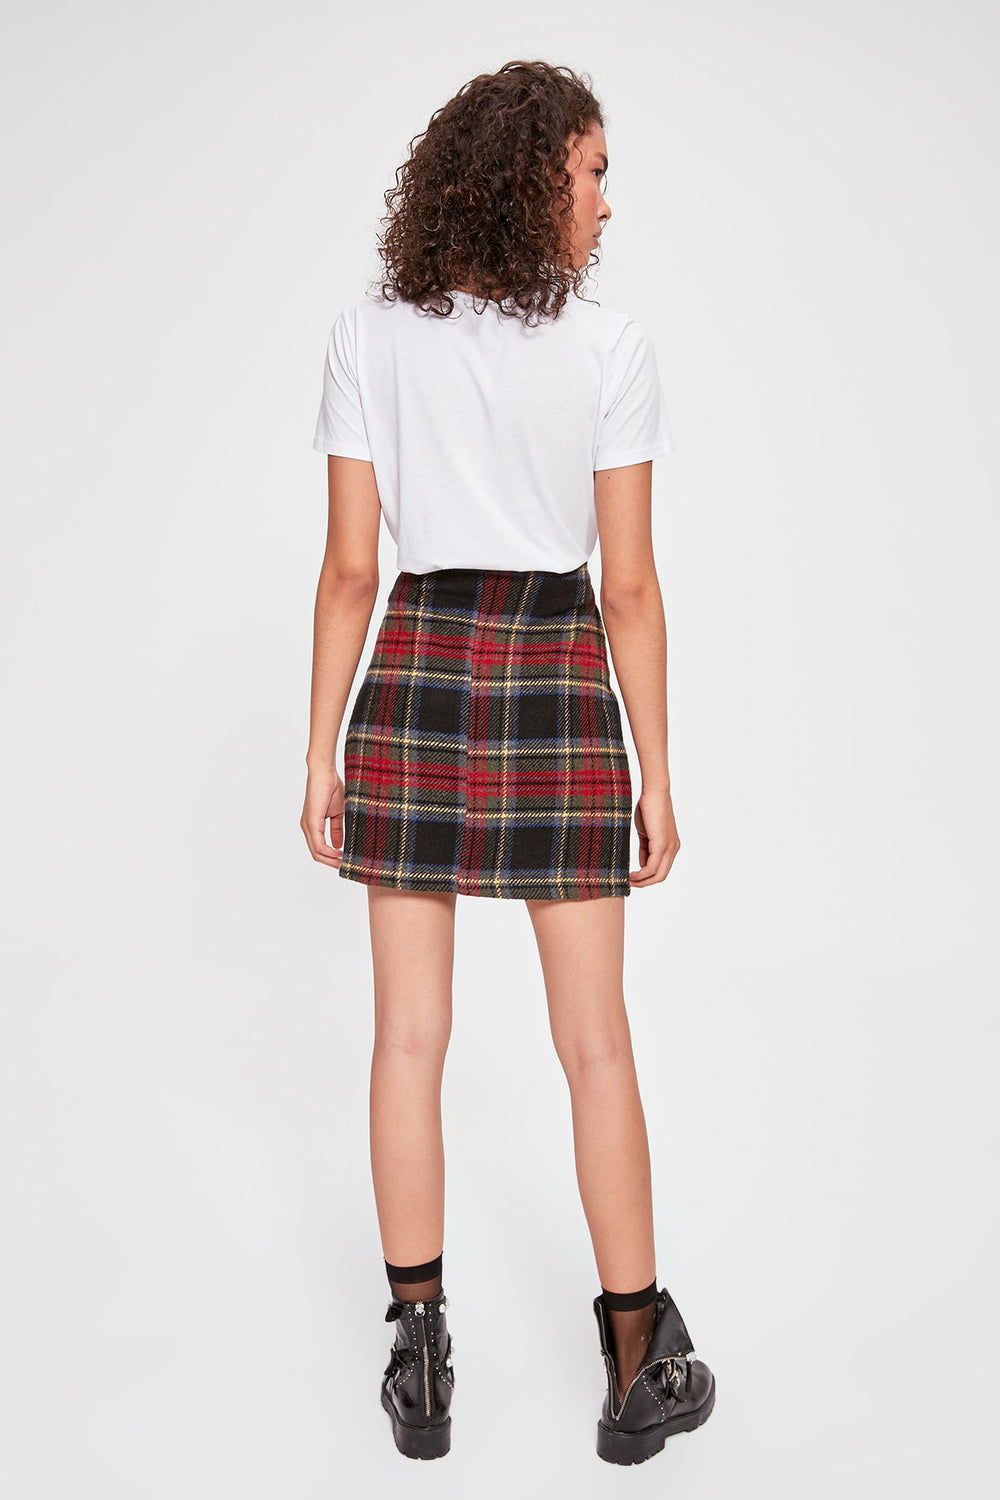 Miss Zut Miss Zut Gray Plaid Skirt Miss Zut &CO